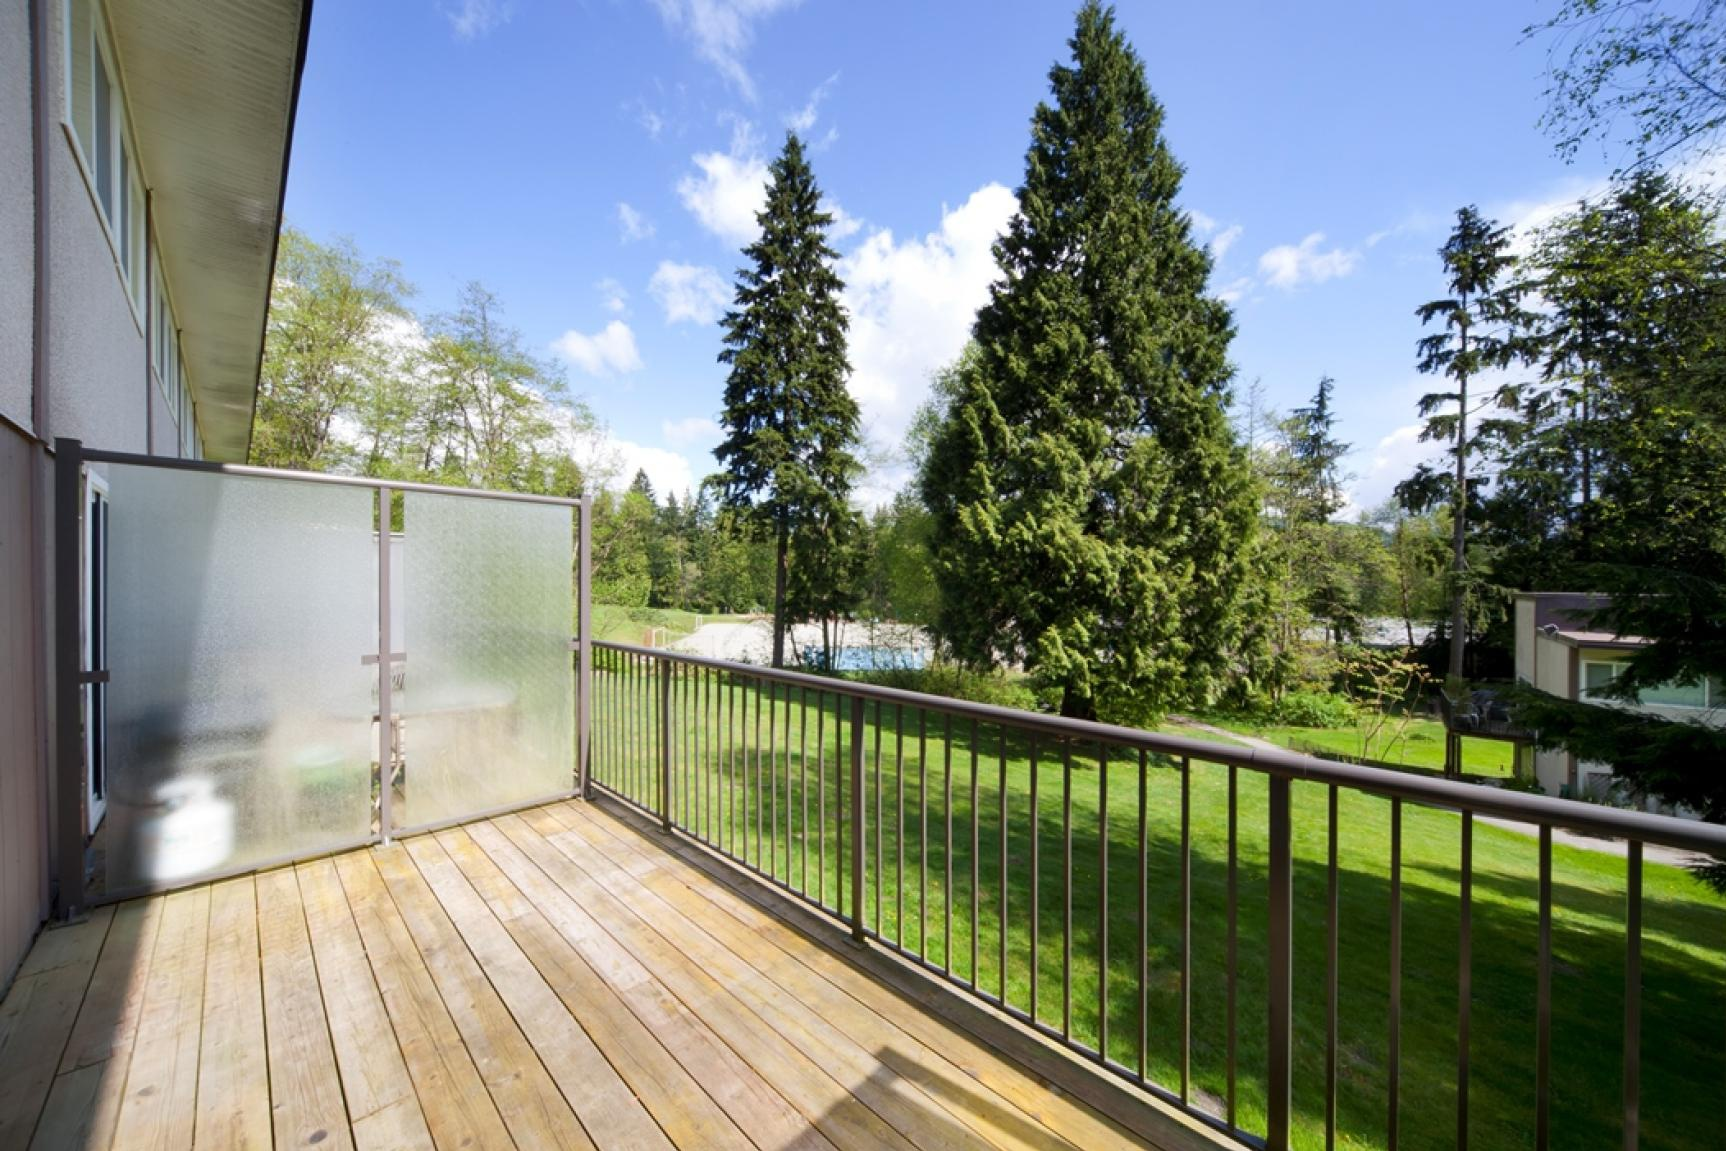 1190 Cecile Drive in Port Moody, BC